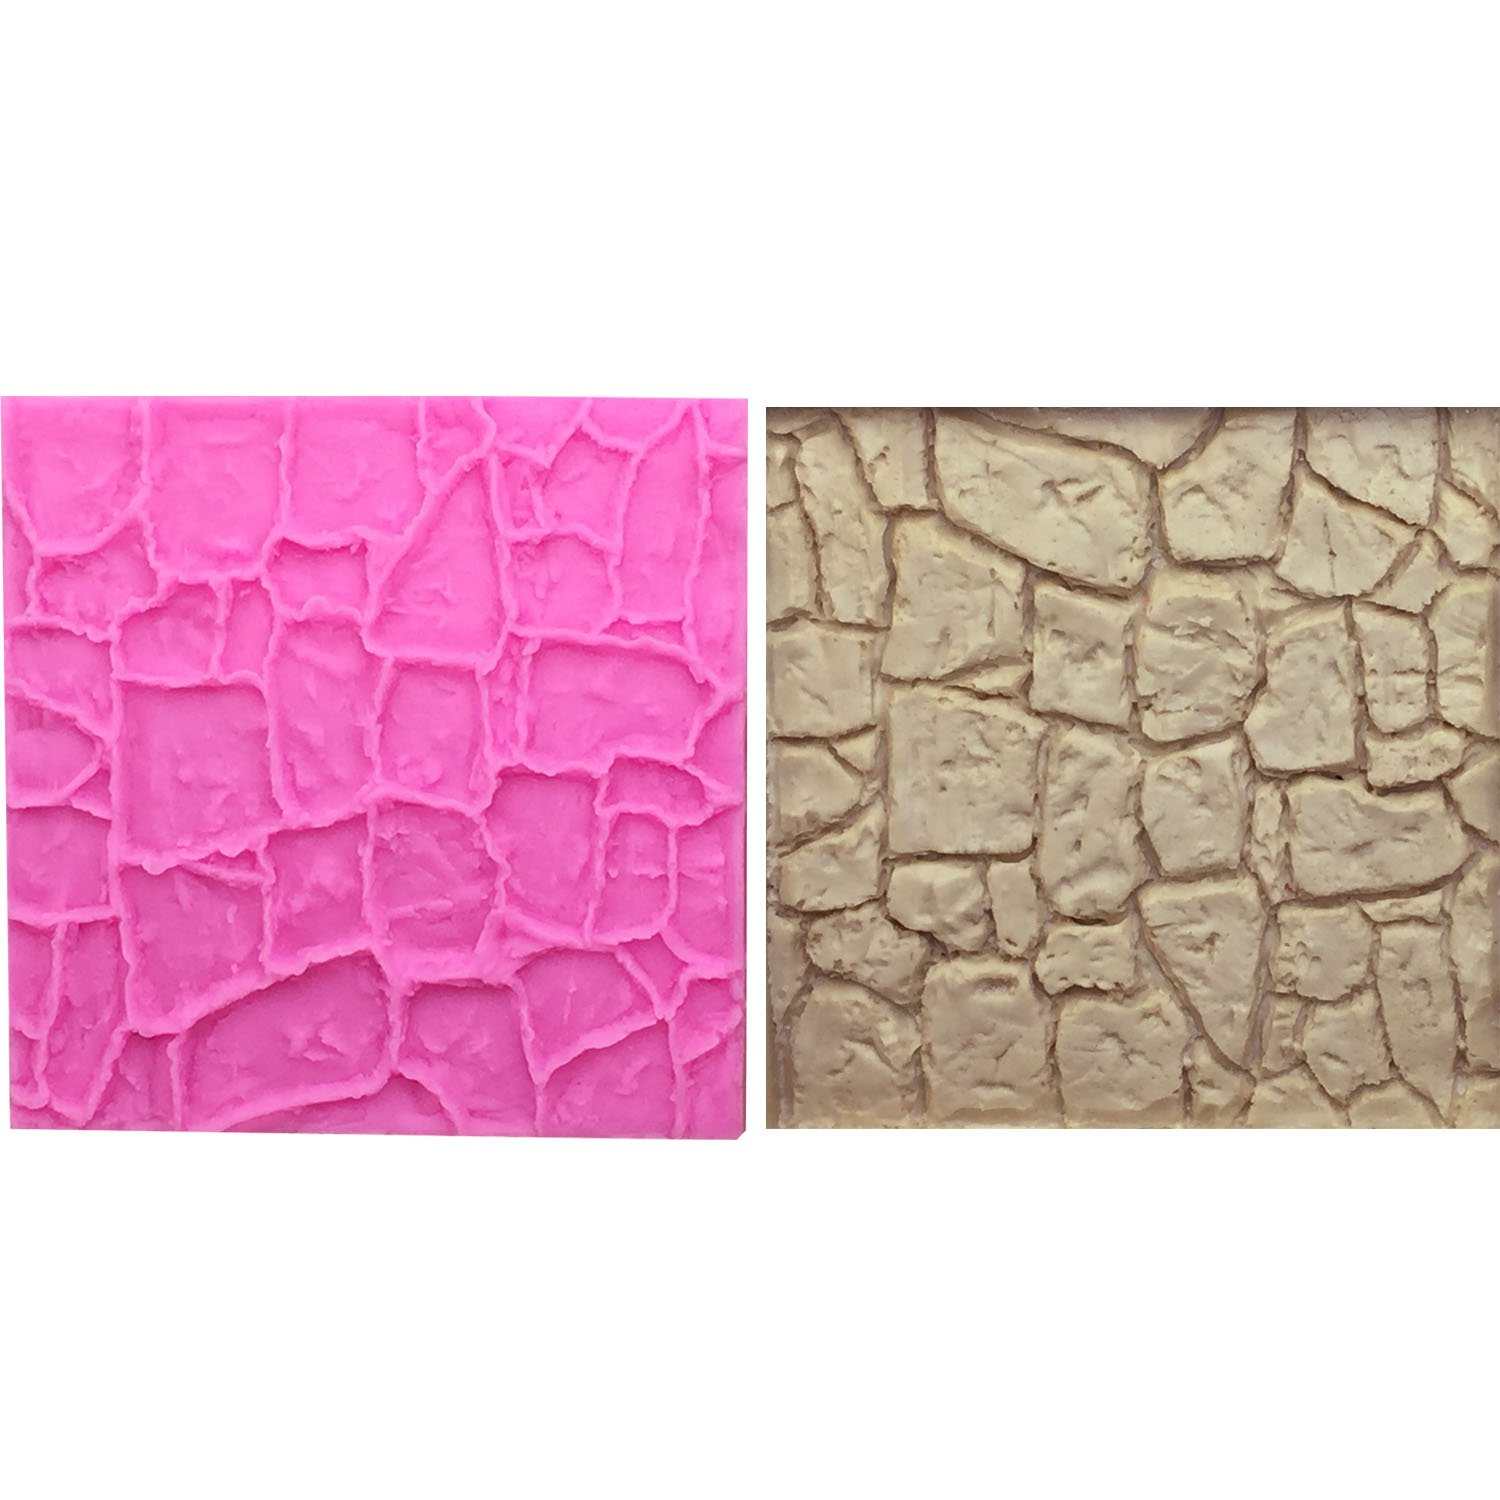 Star-Trade-Inc - M0663 Stone Texture Wall Rock Silicone Mold lace mat Chocolate Fondant Cake Bread Decorating DIY Baking Cookies Mould